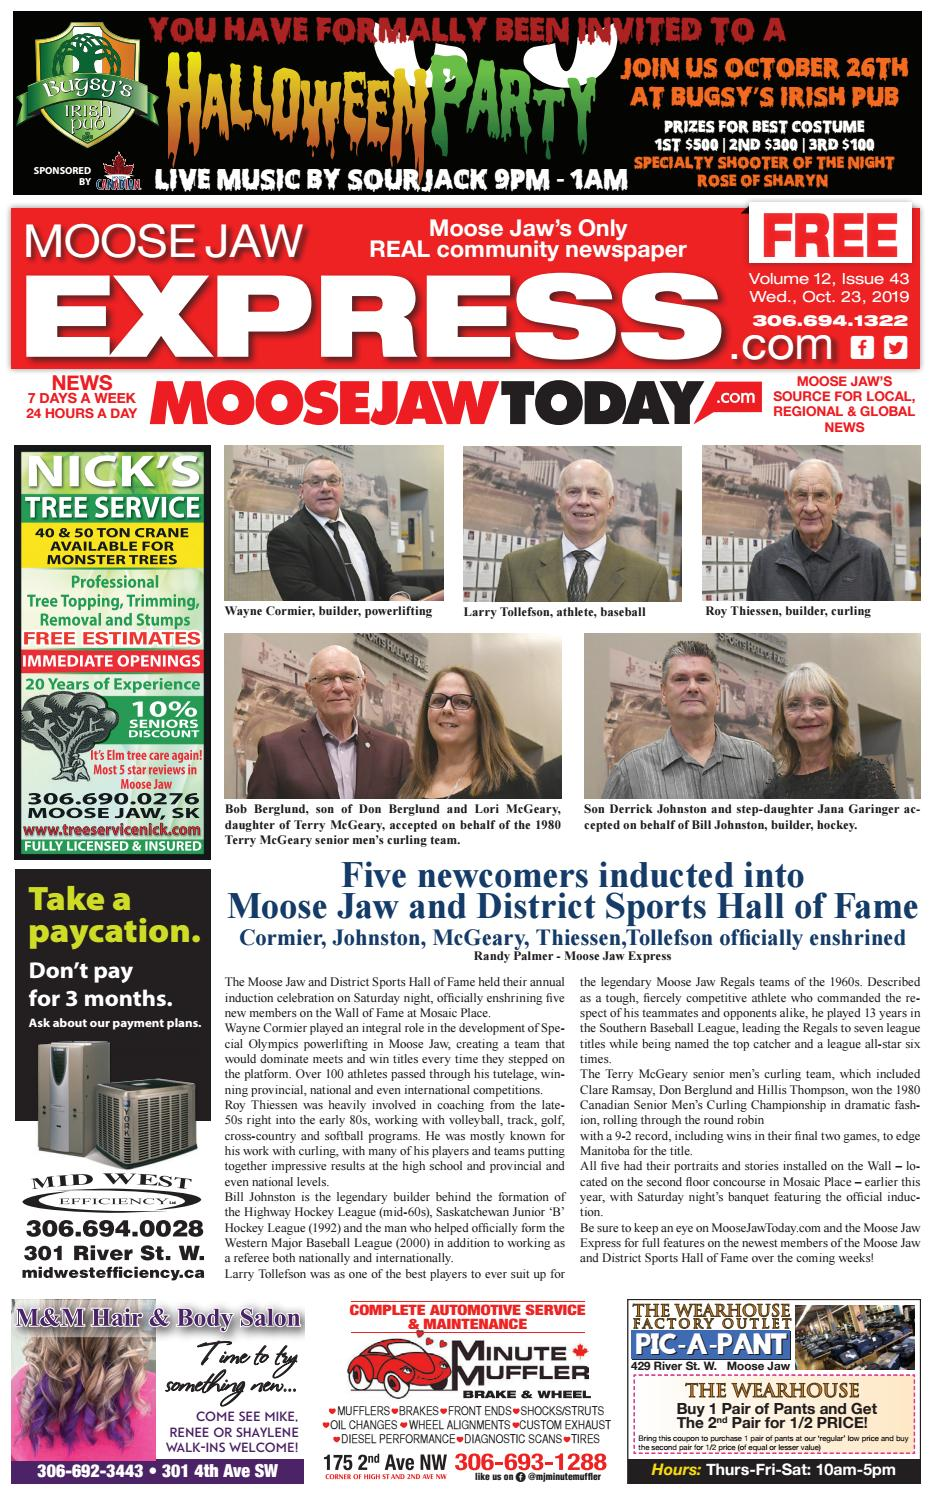 Moose Jaw Express October 23rd 2019 By Moose Jaw Express Issuu